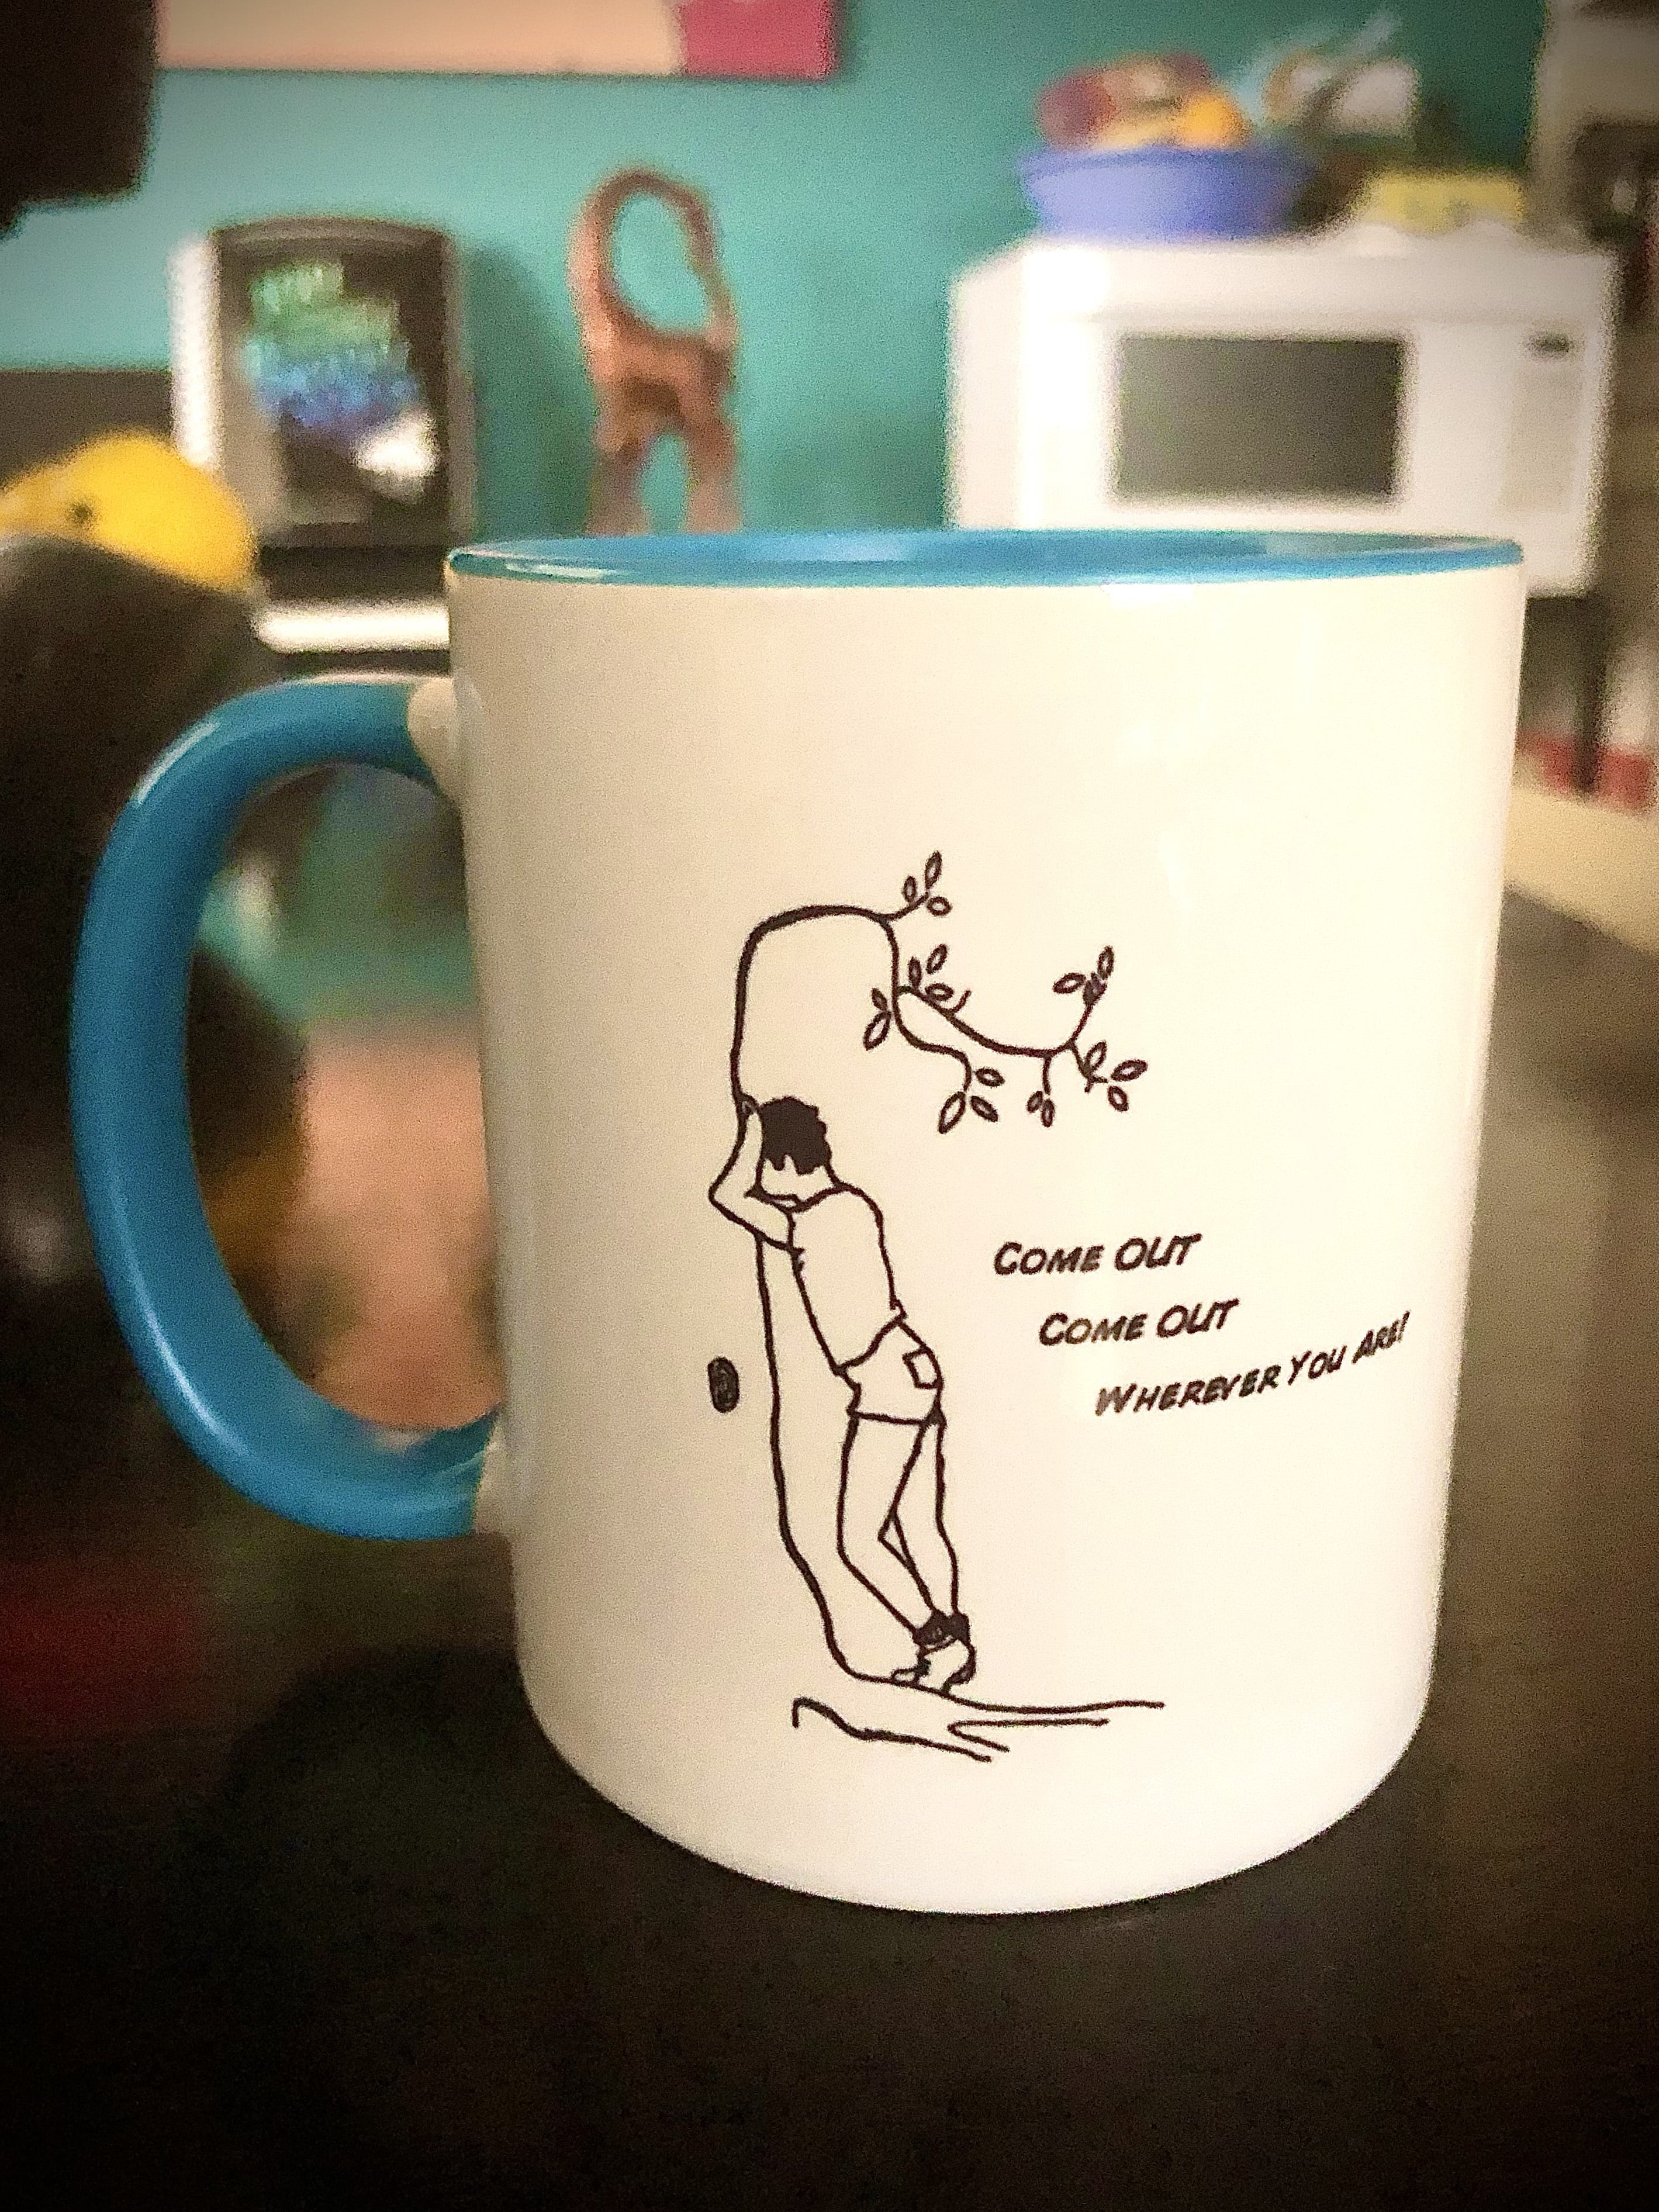 A mug with a man and the text